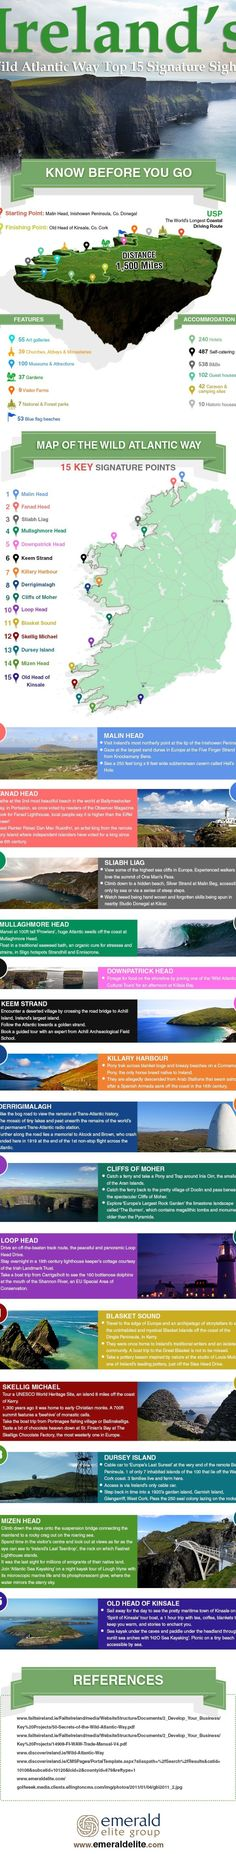 Ireland Wild Atlantic Way Infographic